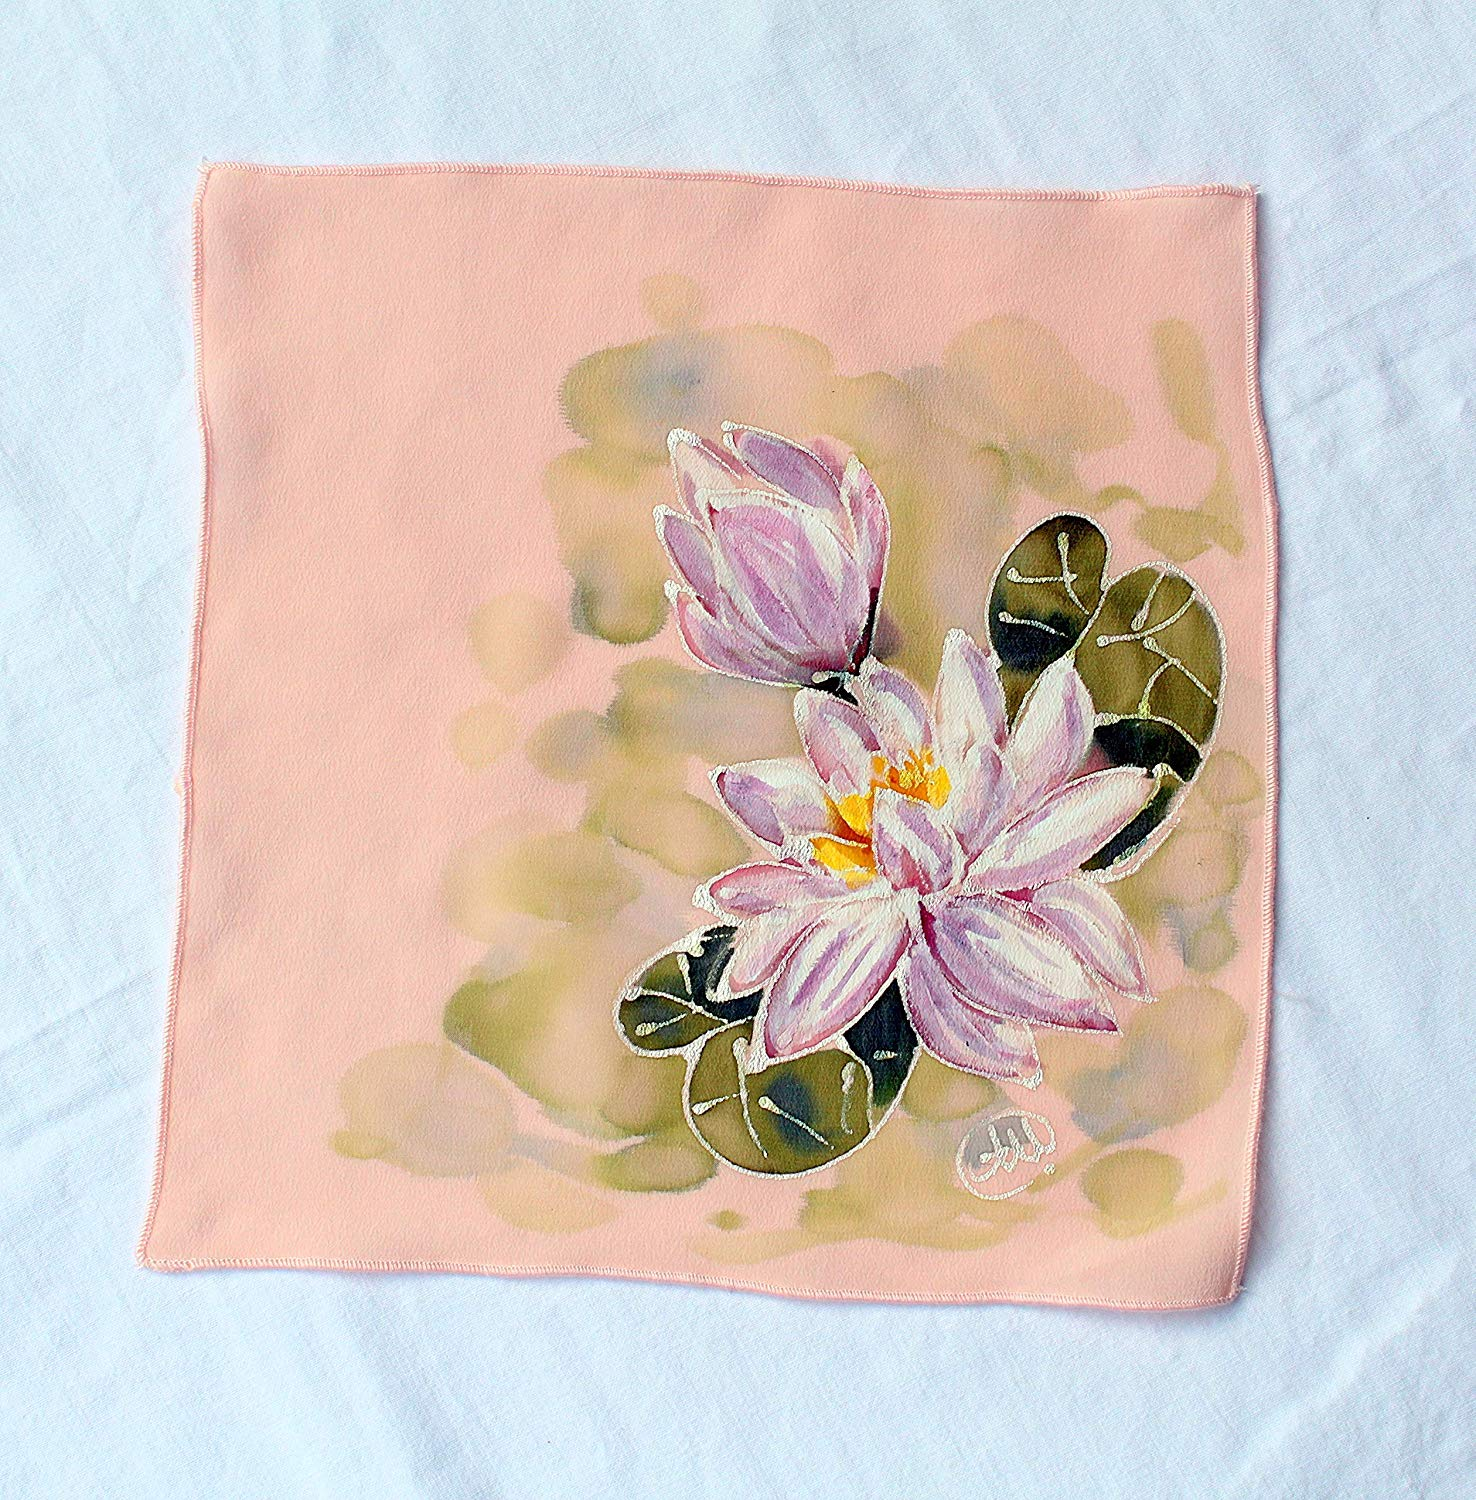 SALE!!! 15% OFF,Water Lily Silk Pocket Square Women/Hand Painted Silk Pocket Square/Great as a pocket square or Silk/Handkerchief for Men or Women/Handkerchief/Womens silk hankie,size 9.84/9.84 in.